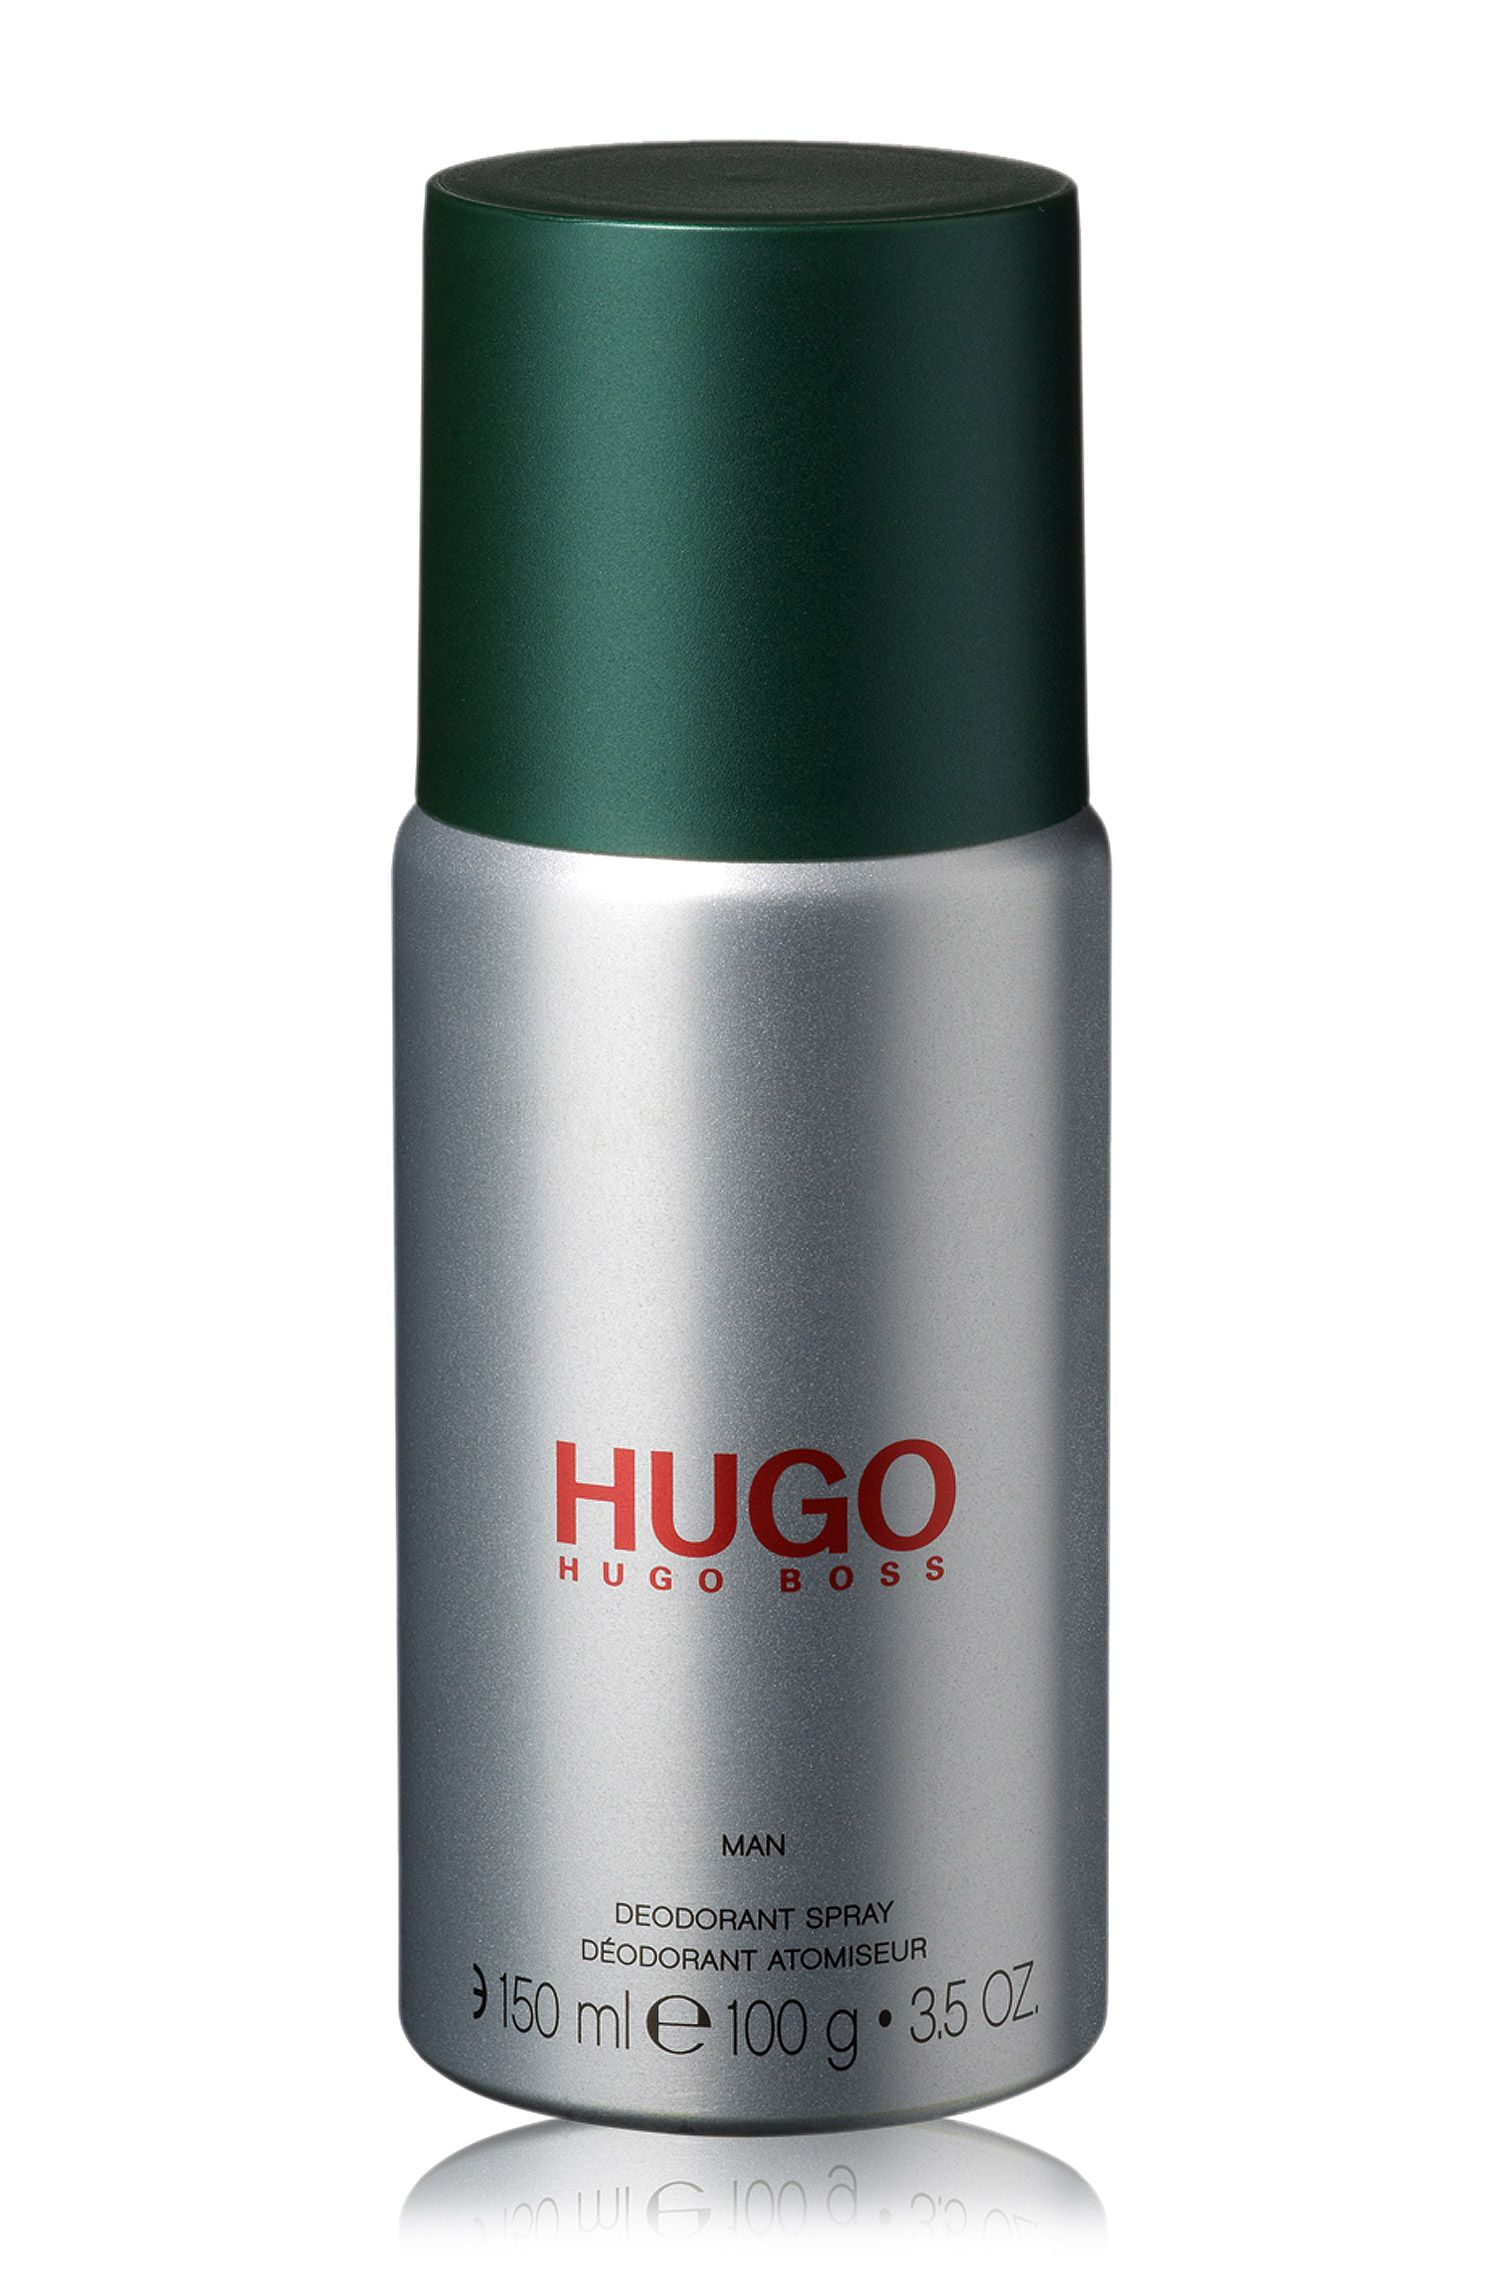 'HUGO Man' Deospray